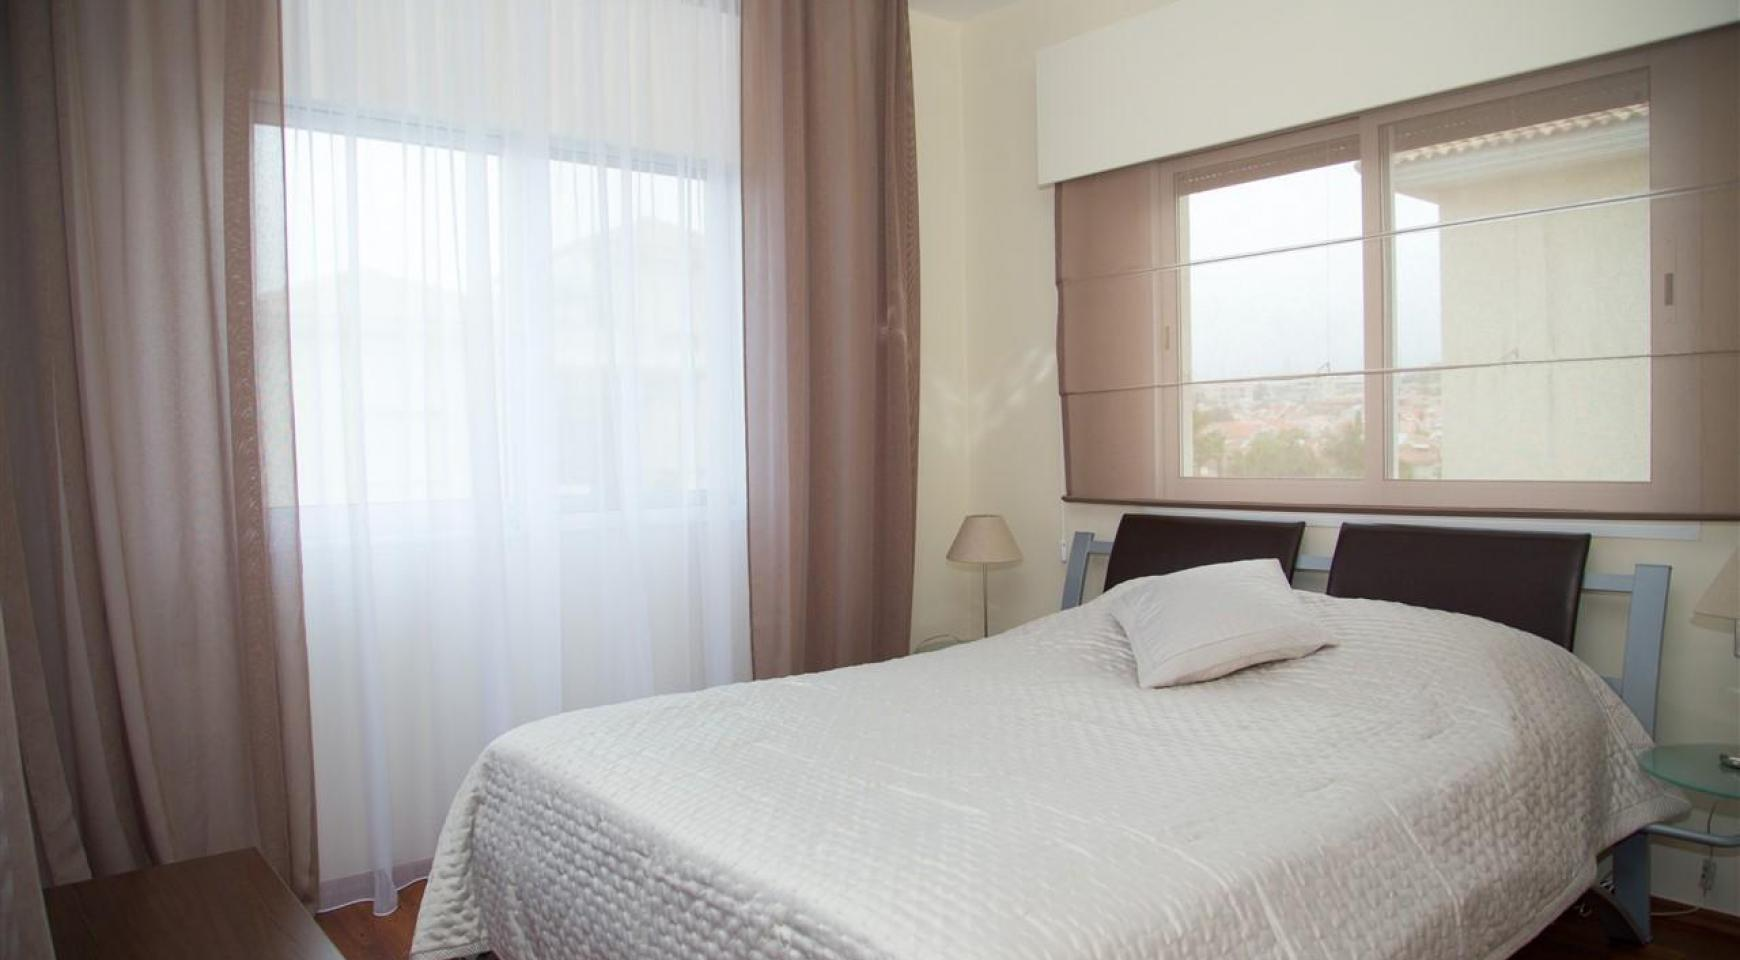 Αντίγραφο Luxury 2 Bedroom Apartment Mesogios Iris 304 in the Tourist area near the Beach - 15